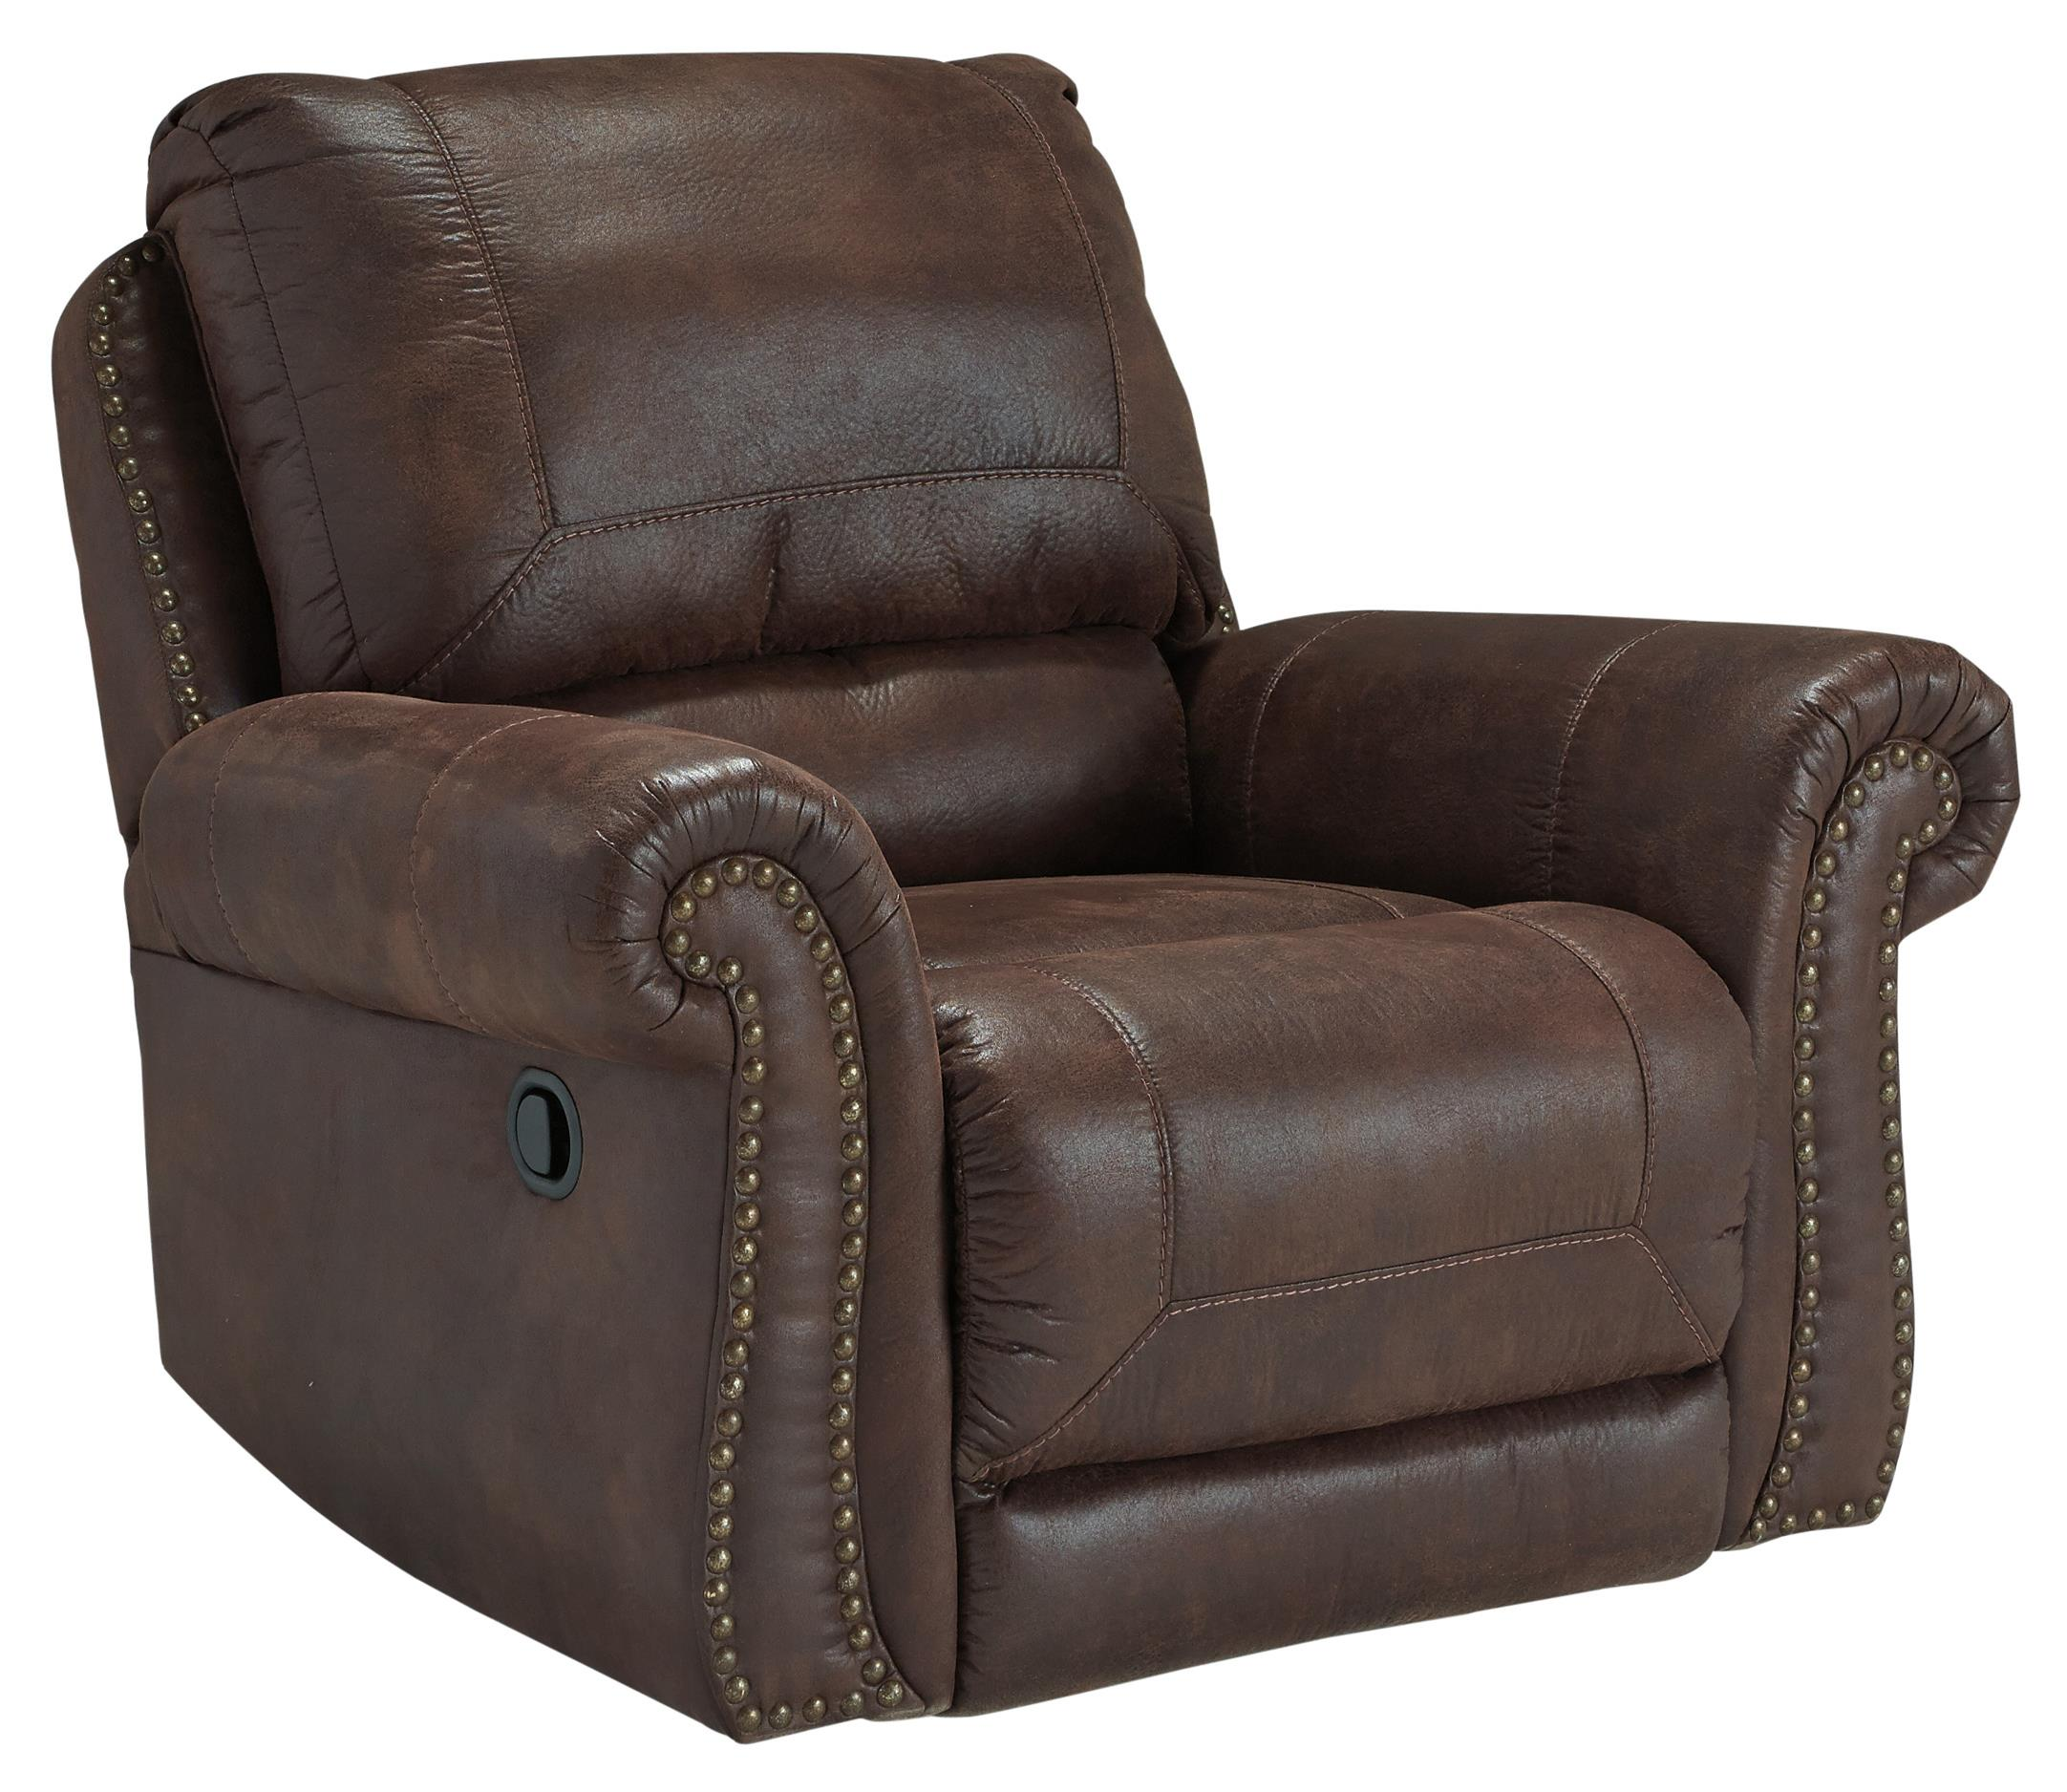 Faux Leather Rocker Recliner With Rolled Arms And Nailhead